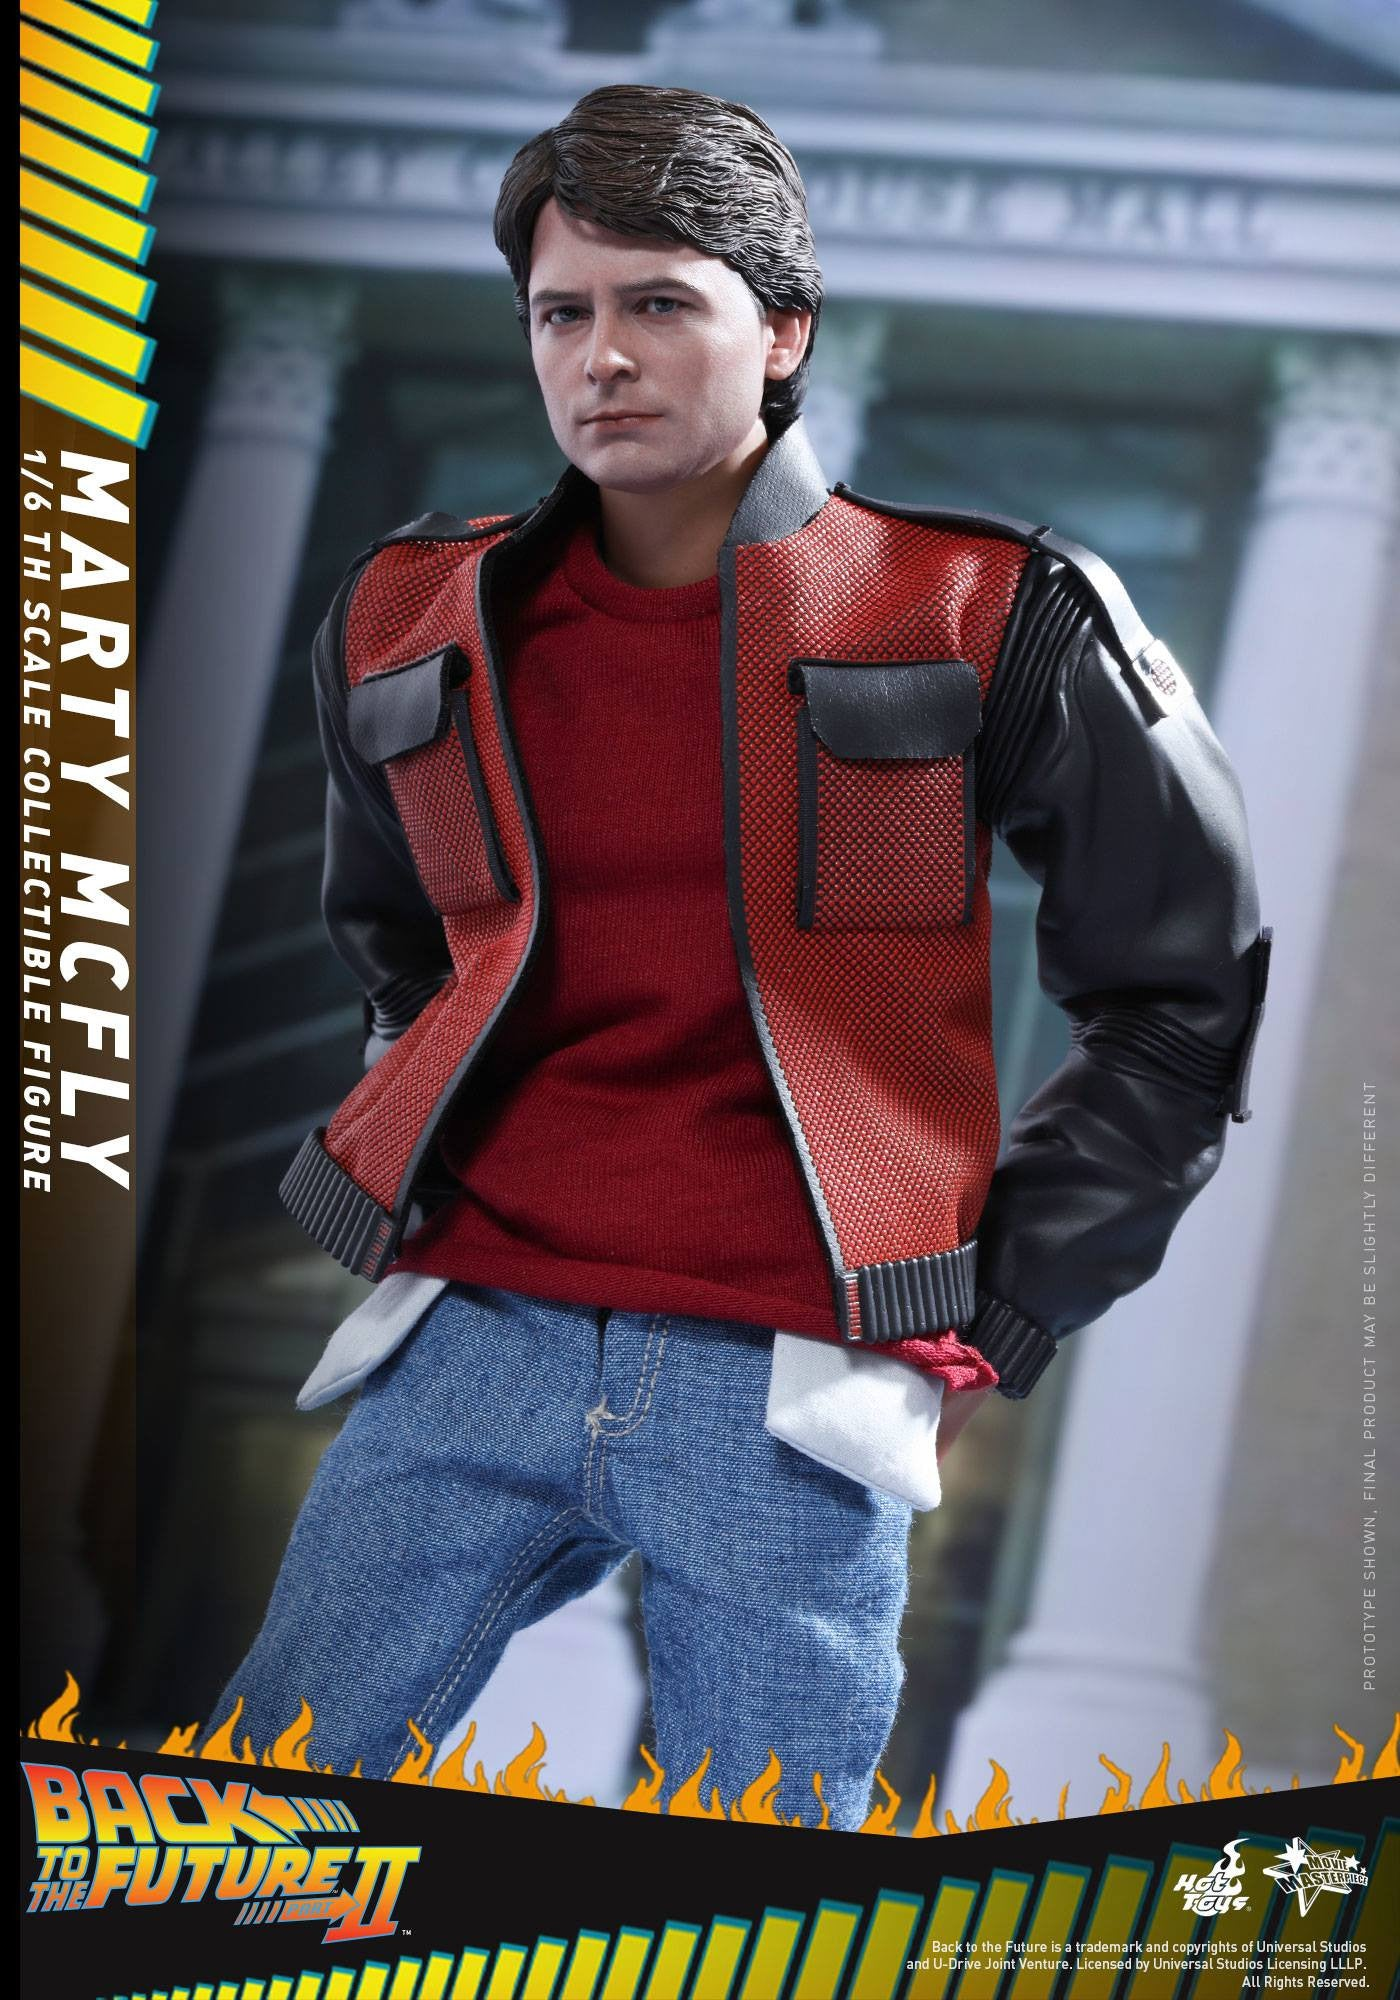 Hot Toys - MMS379 - Back to The Future Part II - Marty McFly (Normal Edition) - Marvelous Toys - 18